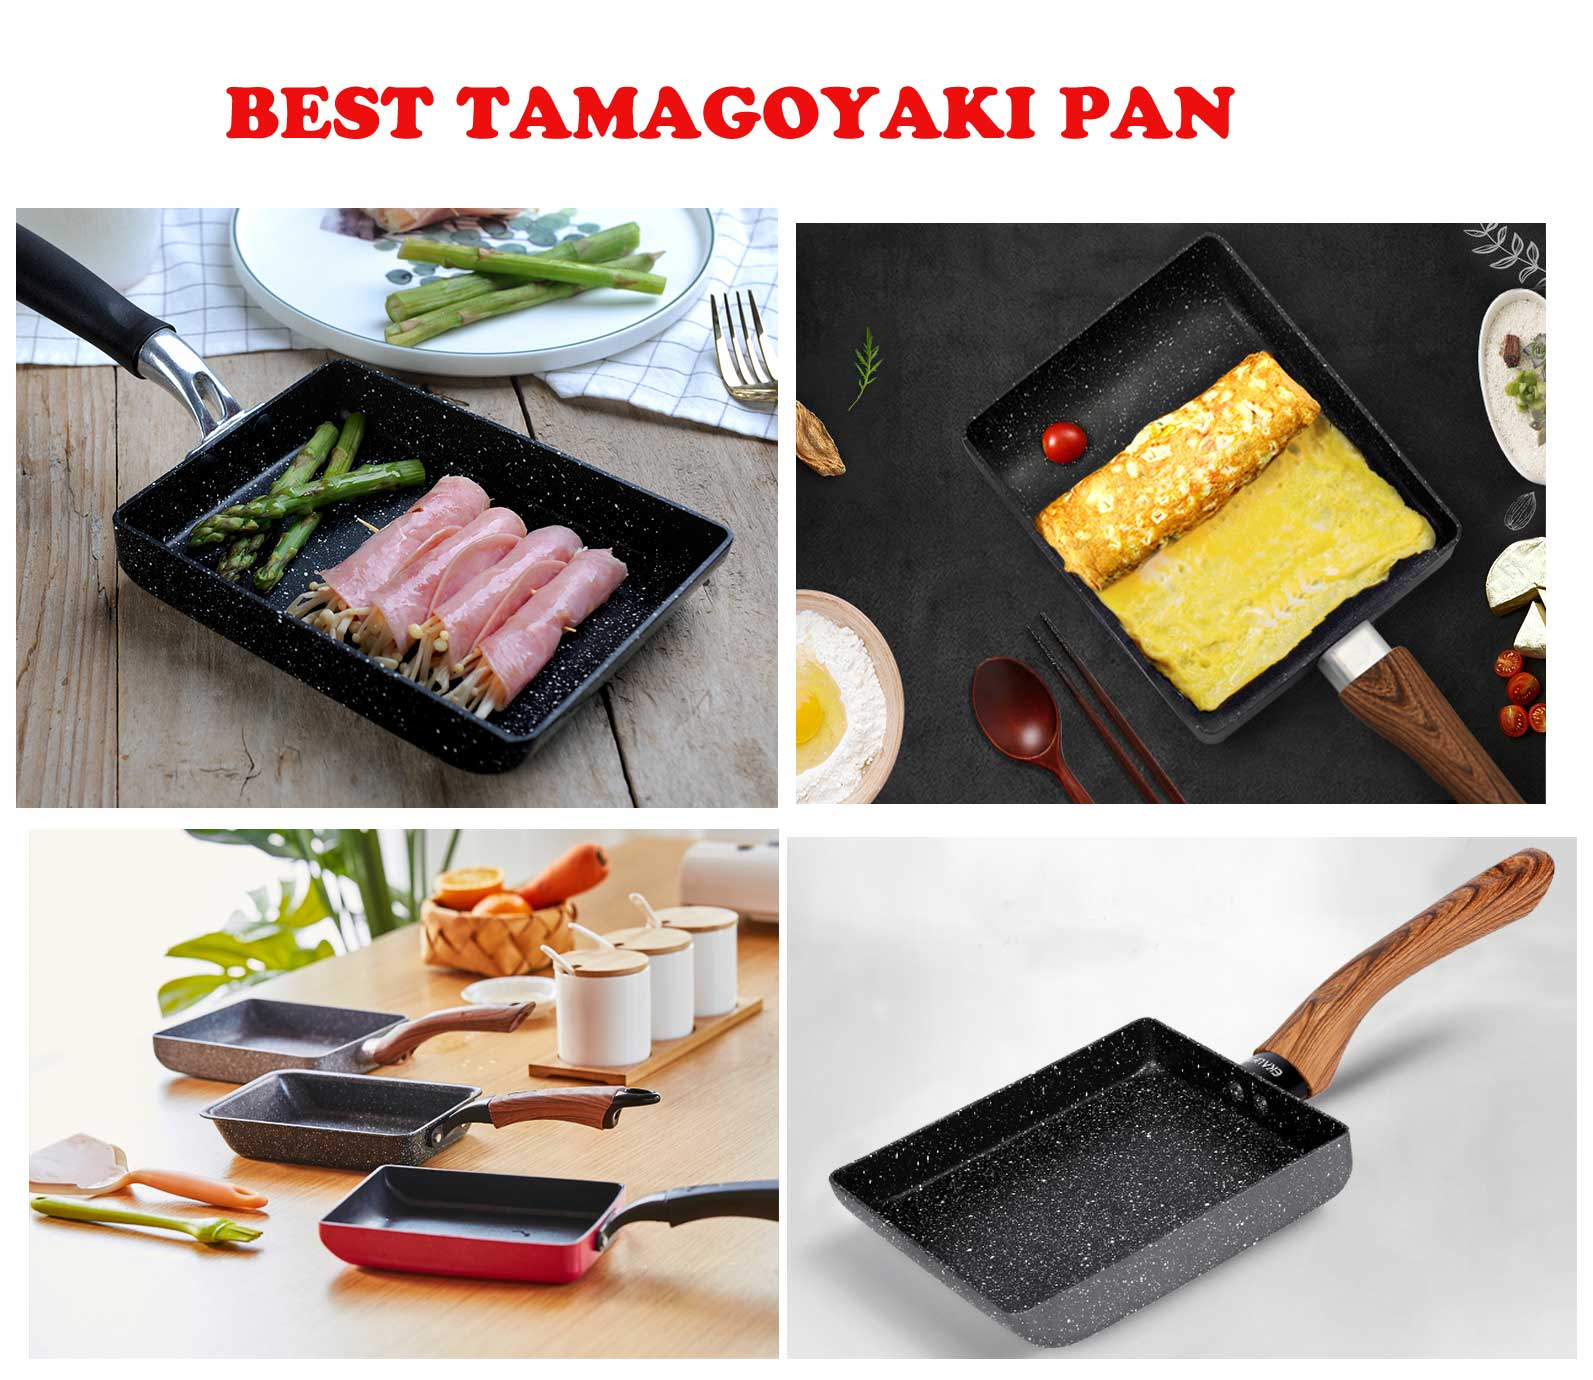 Best Tamagoyaki Pan